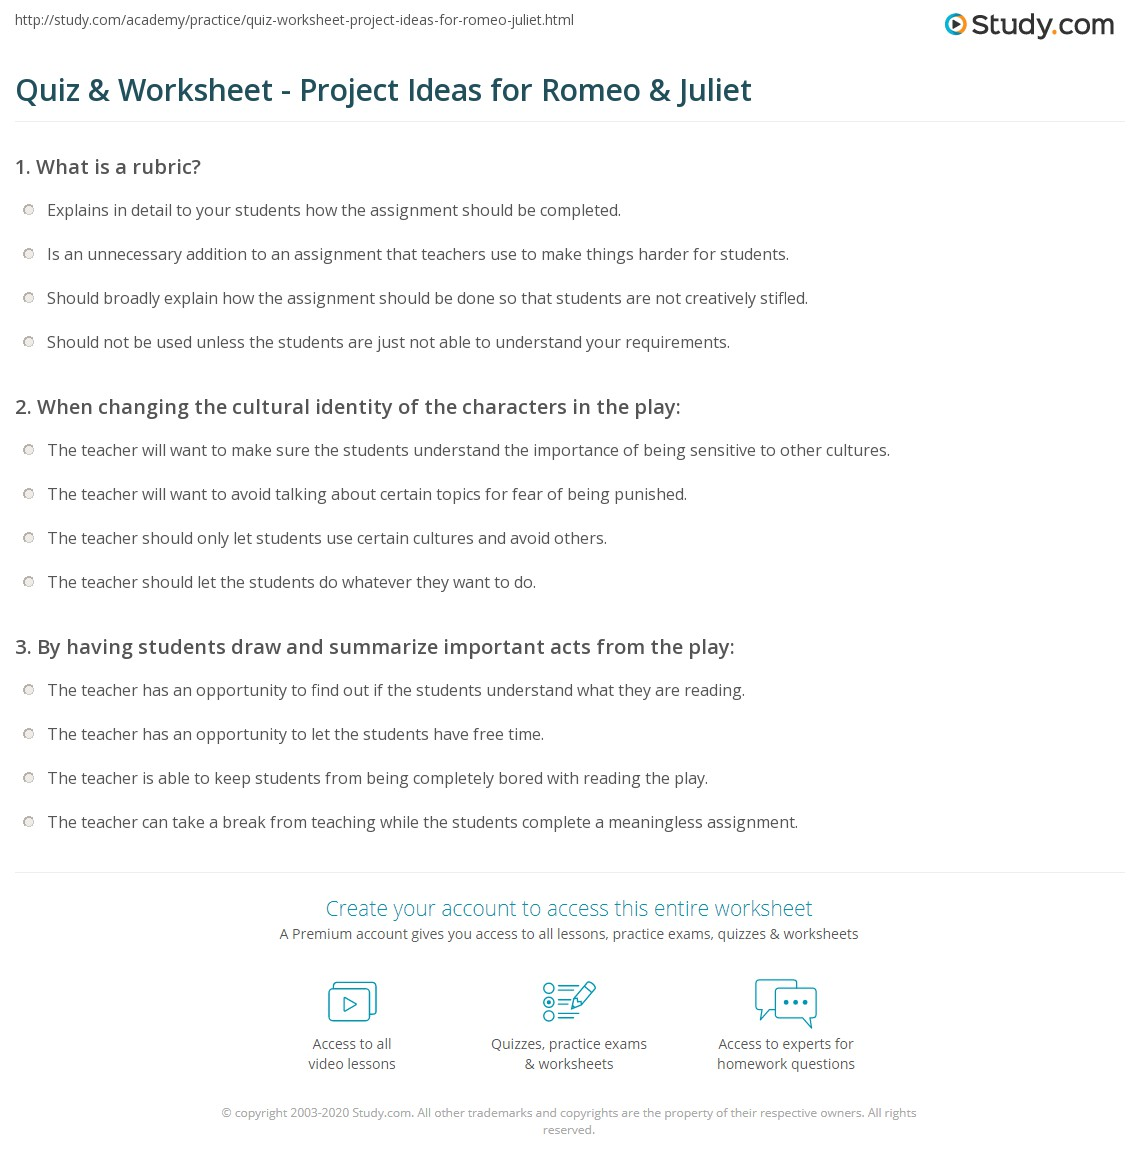 essay questions on act 1 of romeo and juliet Romeo and juliet all study guide questions and answers act 3 scene 1: when romeo act 3 scene 5: where are romeo and juliet and what are they discussing when.